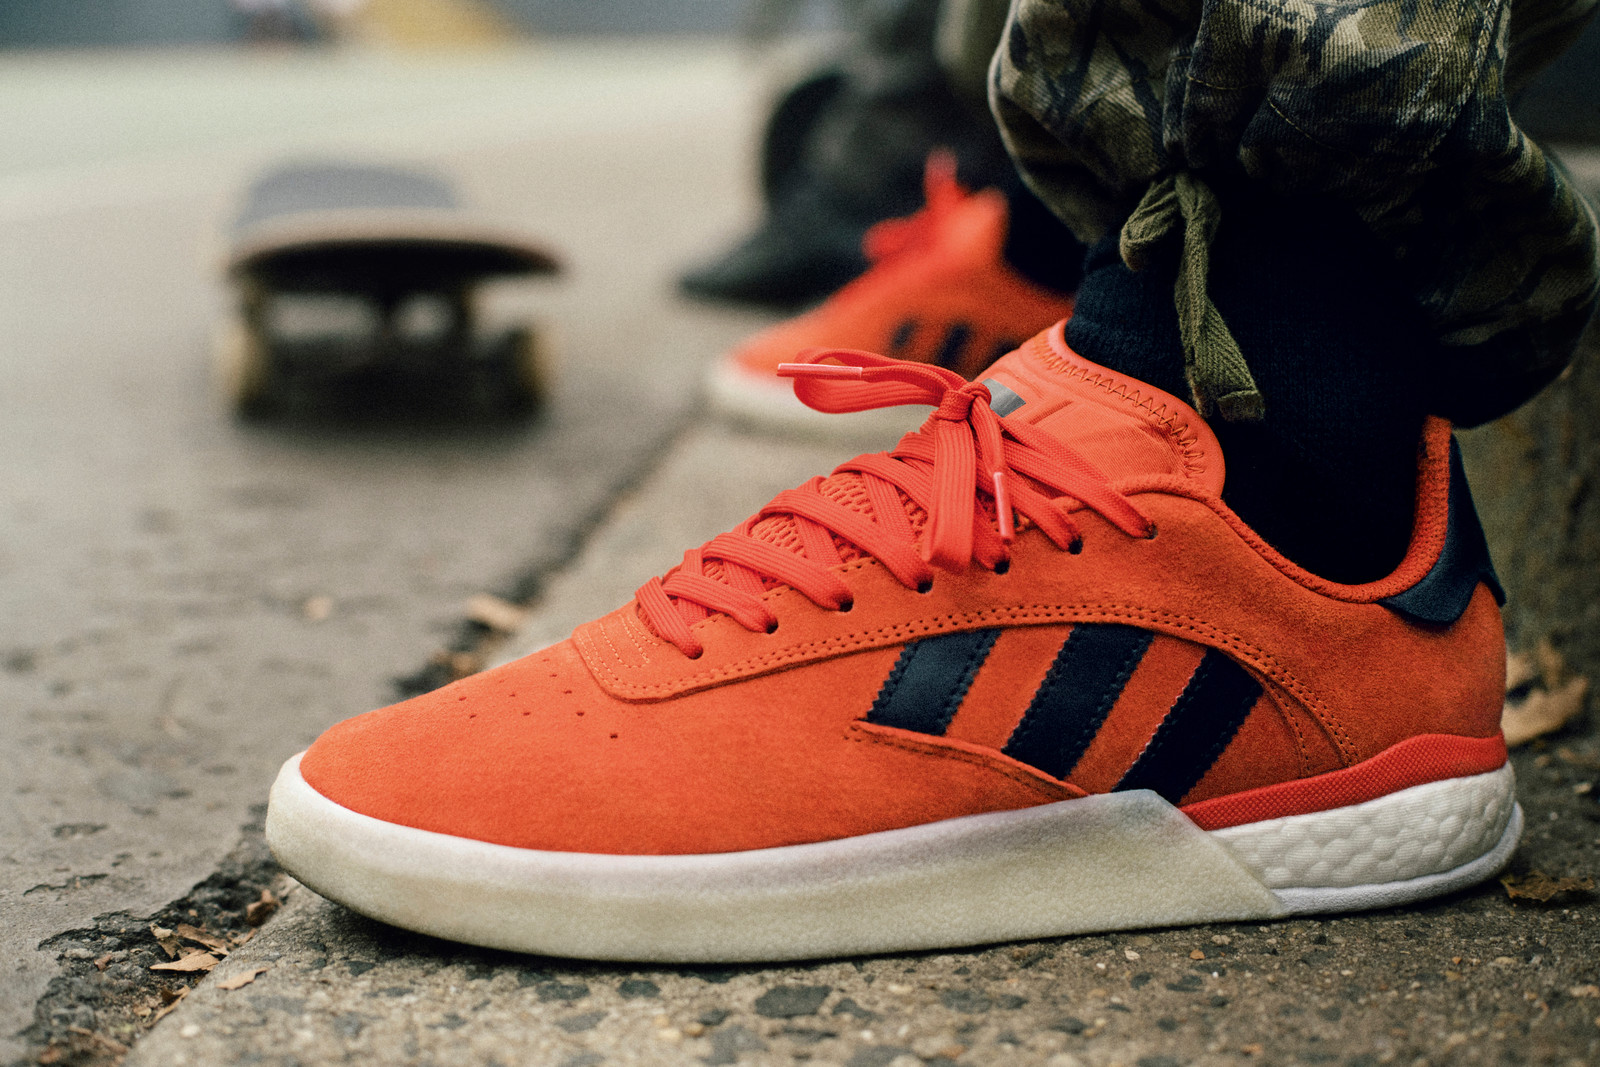 ADIDAS SKATEBOARDING'S 3ST.004 IS INSPIRED BY TYSHAWN JONES